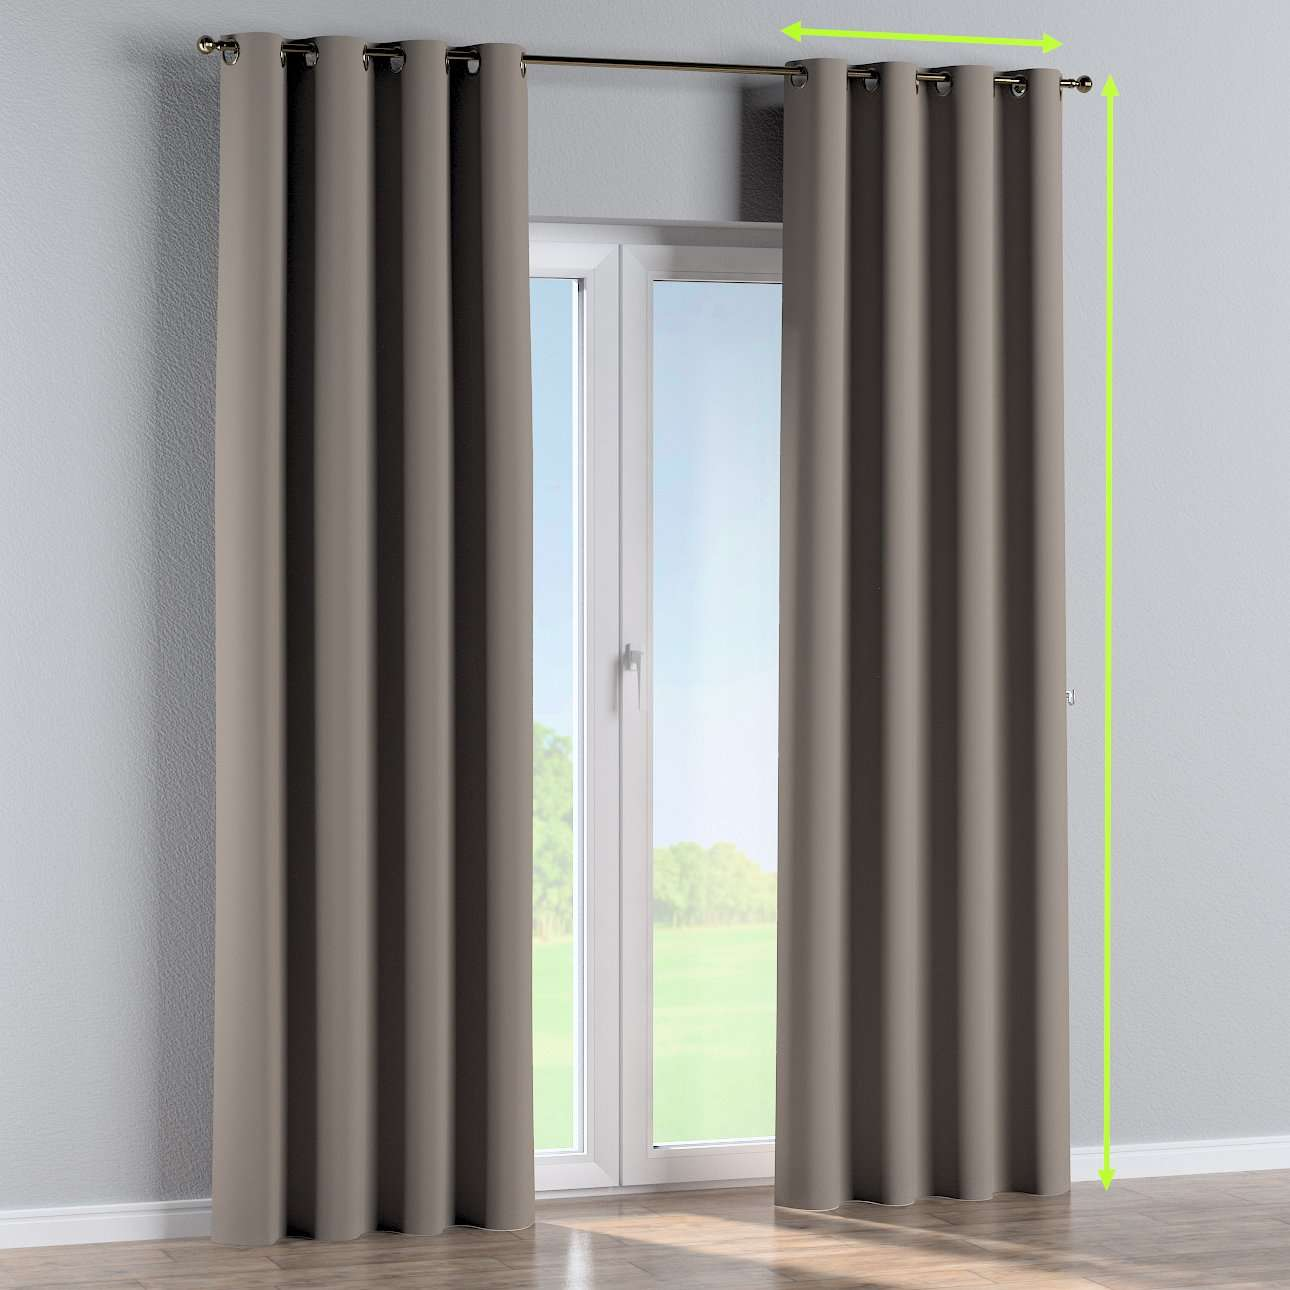 Eyelet curtain in collection Blackout, fabric: 269-81